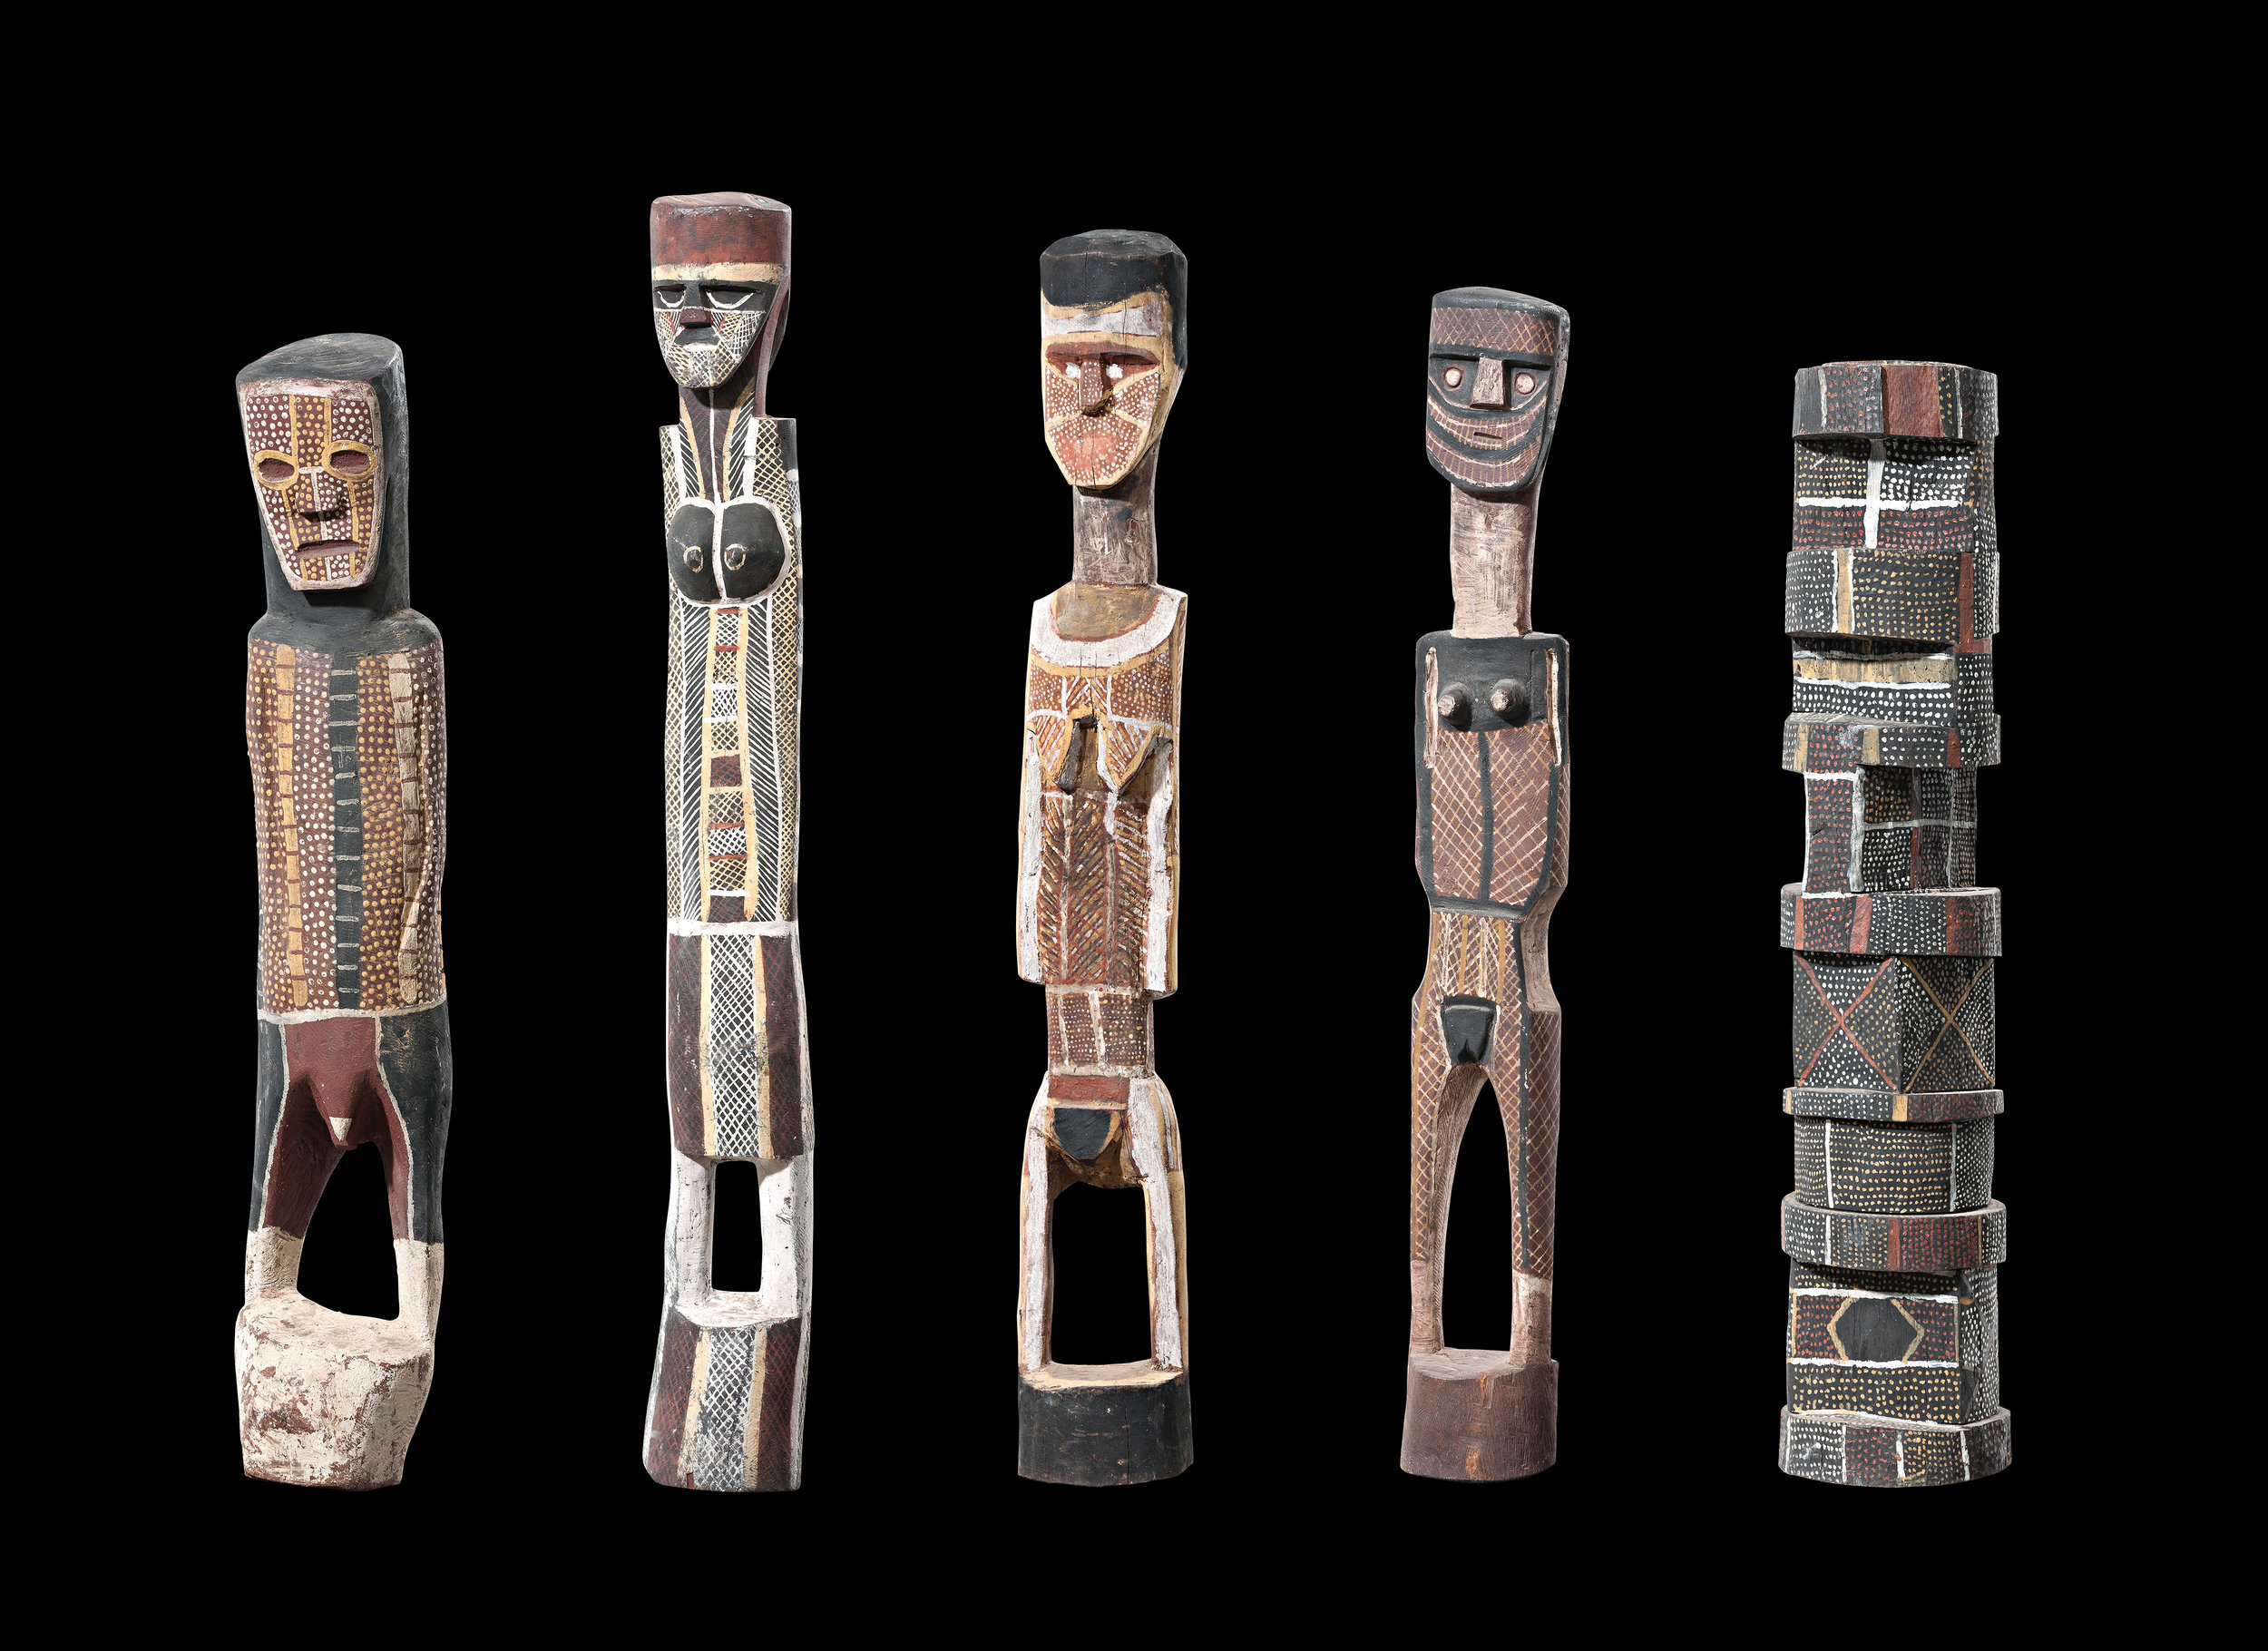 A collection of Tiwi ironwood carvings from the Estate of Marianne Baillieu. From my BARK + IRONWOOD exhibition, November 2016, sold to an Australian Museum